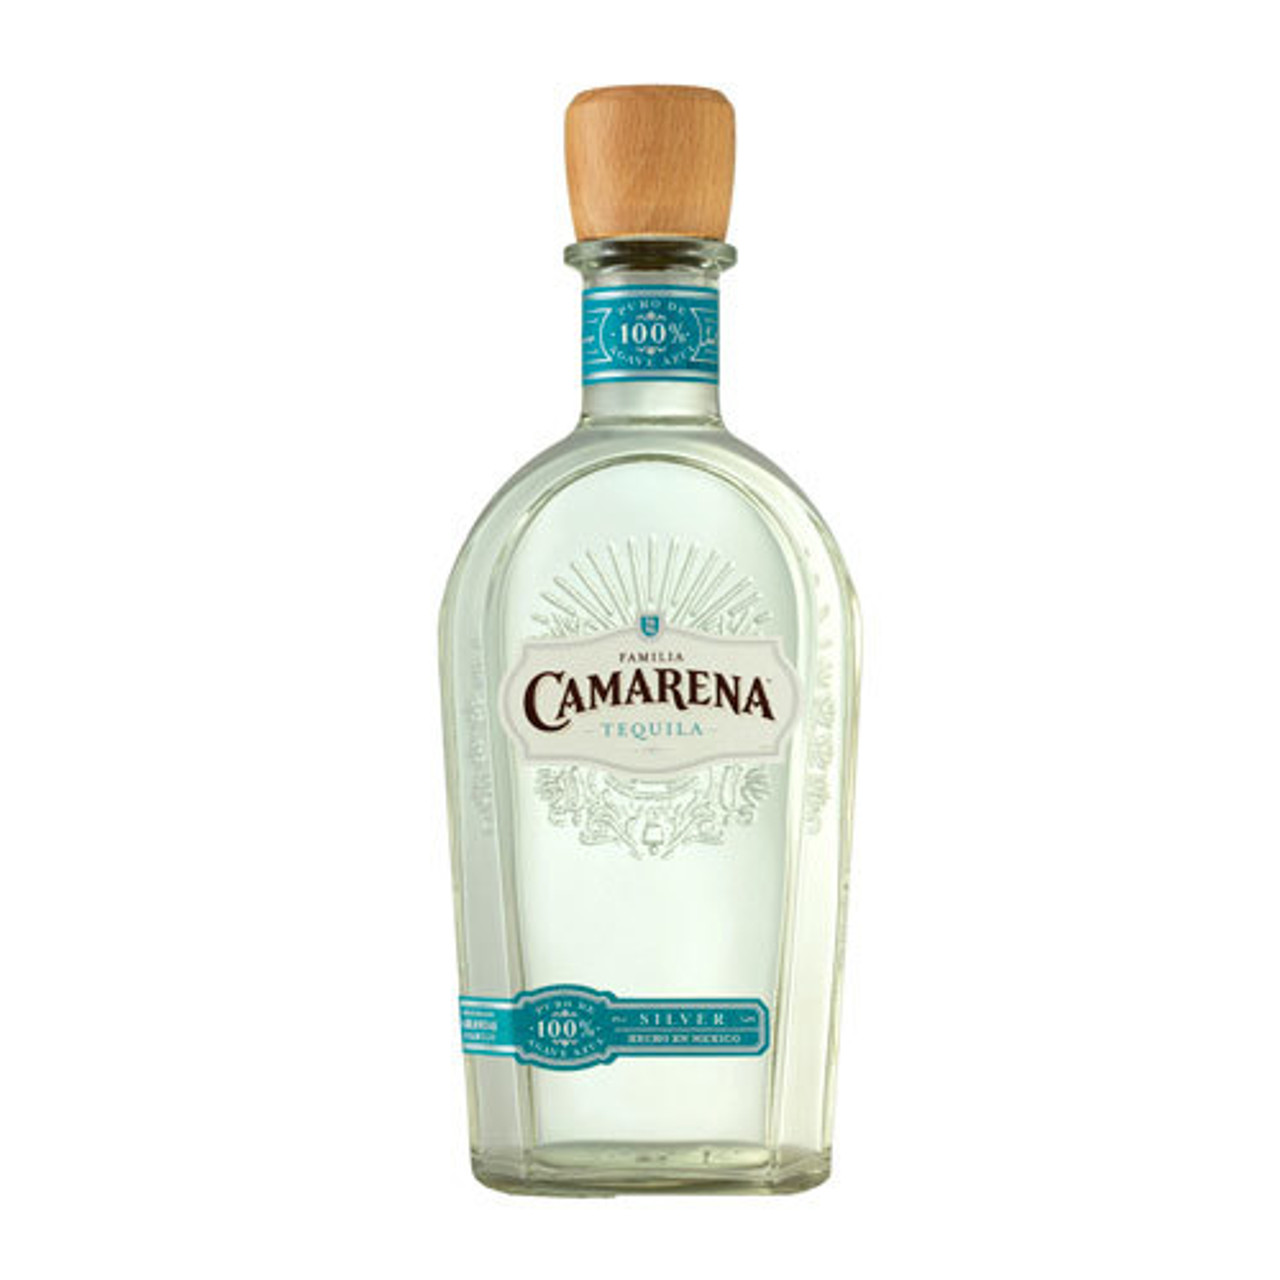 Clear with a pure, platinum sheen, Familia Camarena 100% Blue Agave Silver Tequila shows notes of rich toasted agave and fresh green herbs. Exceptionally soft and smooth on the palate, the Silver Tequila exhibits hints of sweet vanilla, savory brown spices and black pepper with a graceful, warming finish